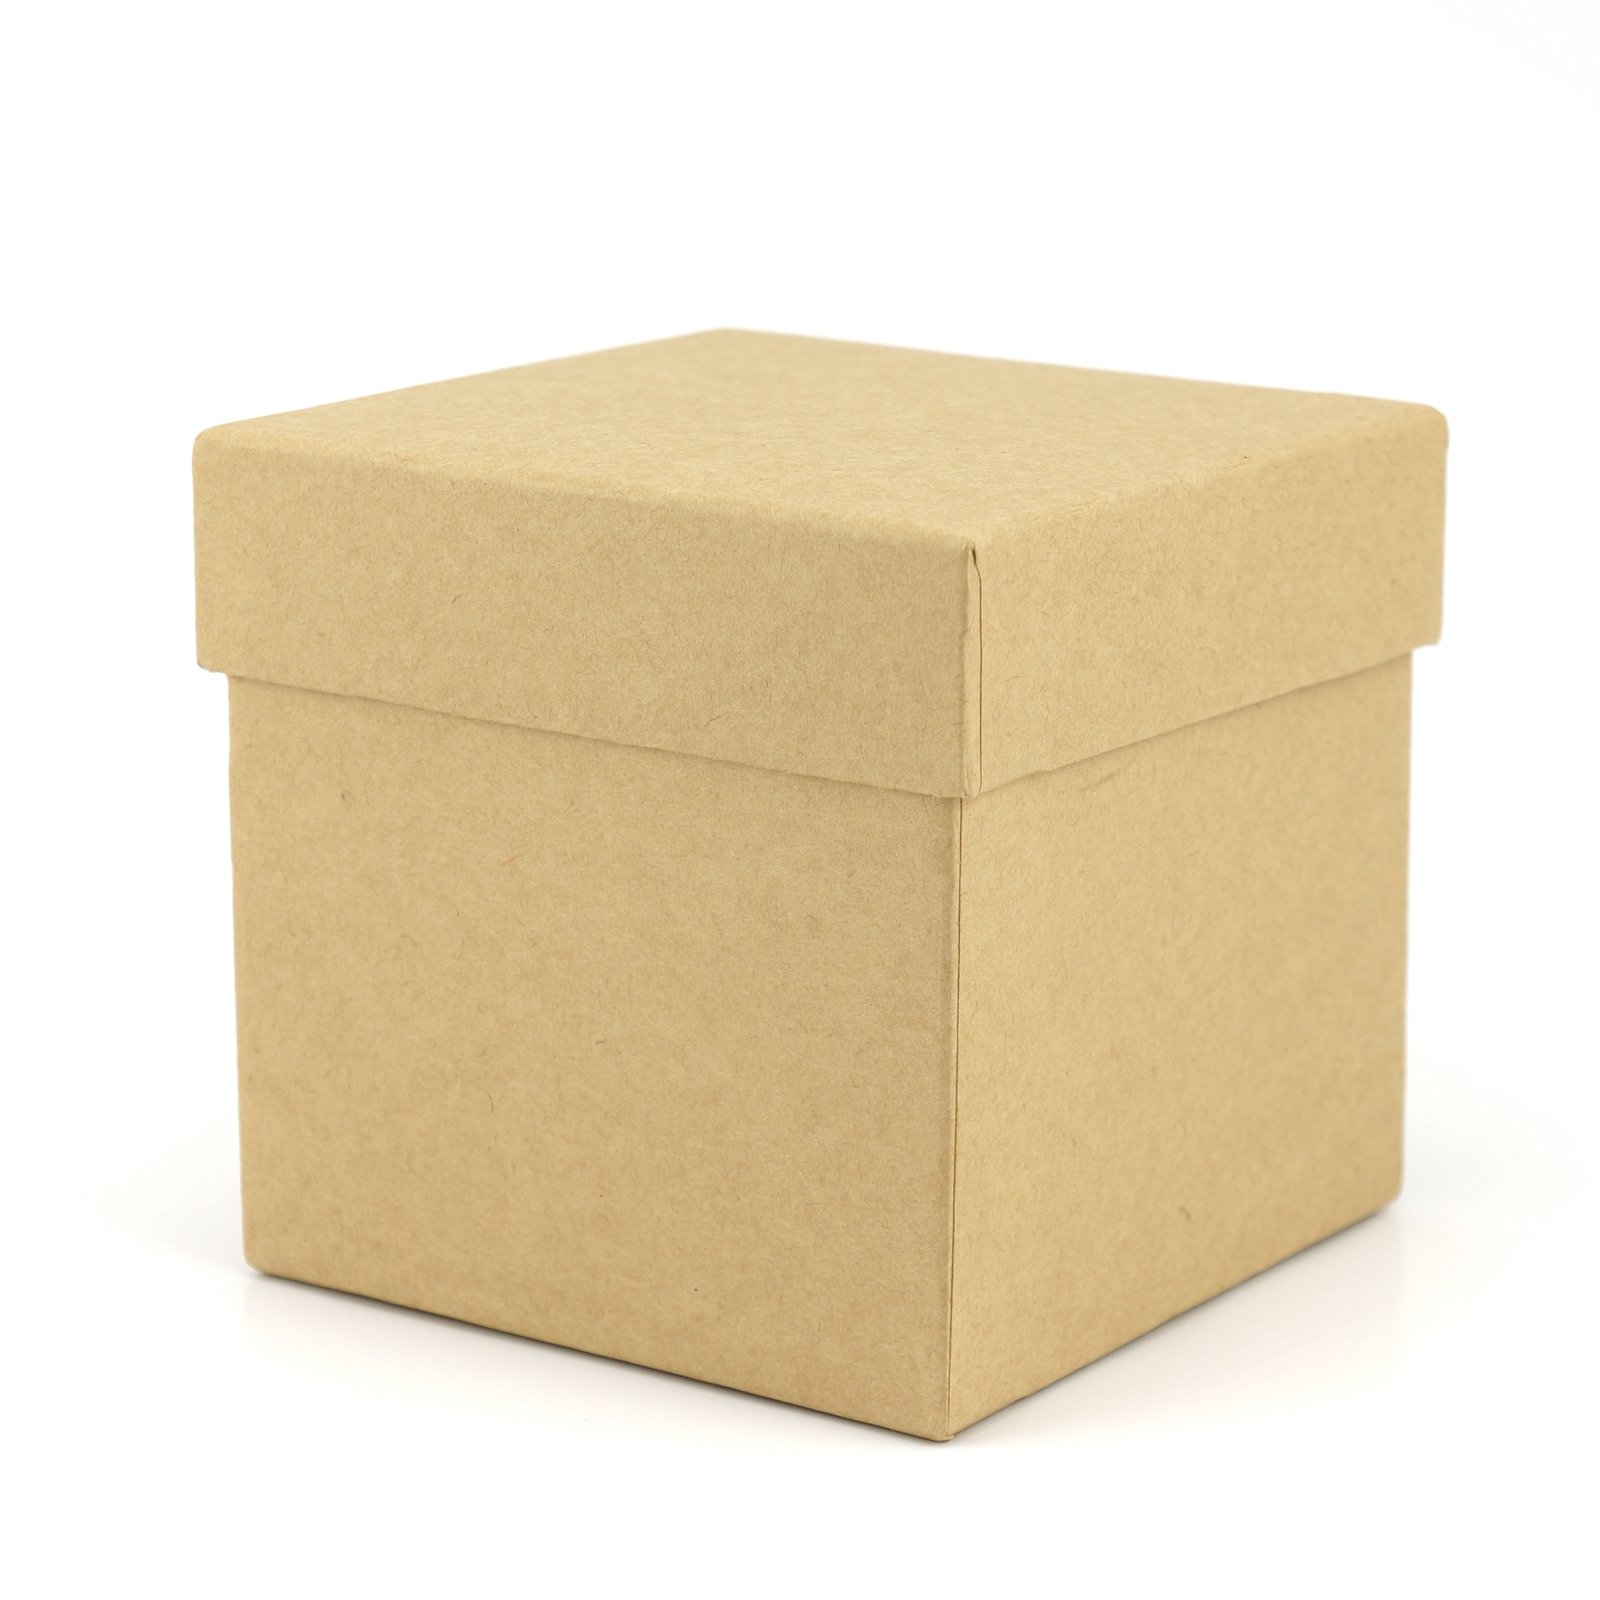 Michaels Favor Boxes With Lids : Small boxes images karakuri